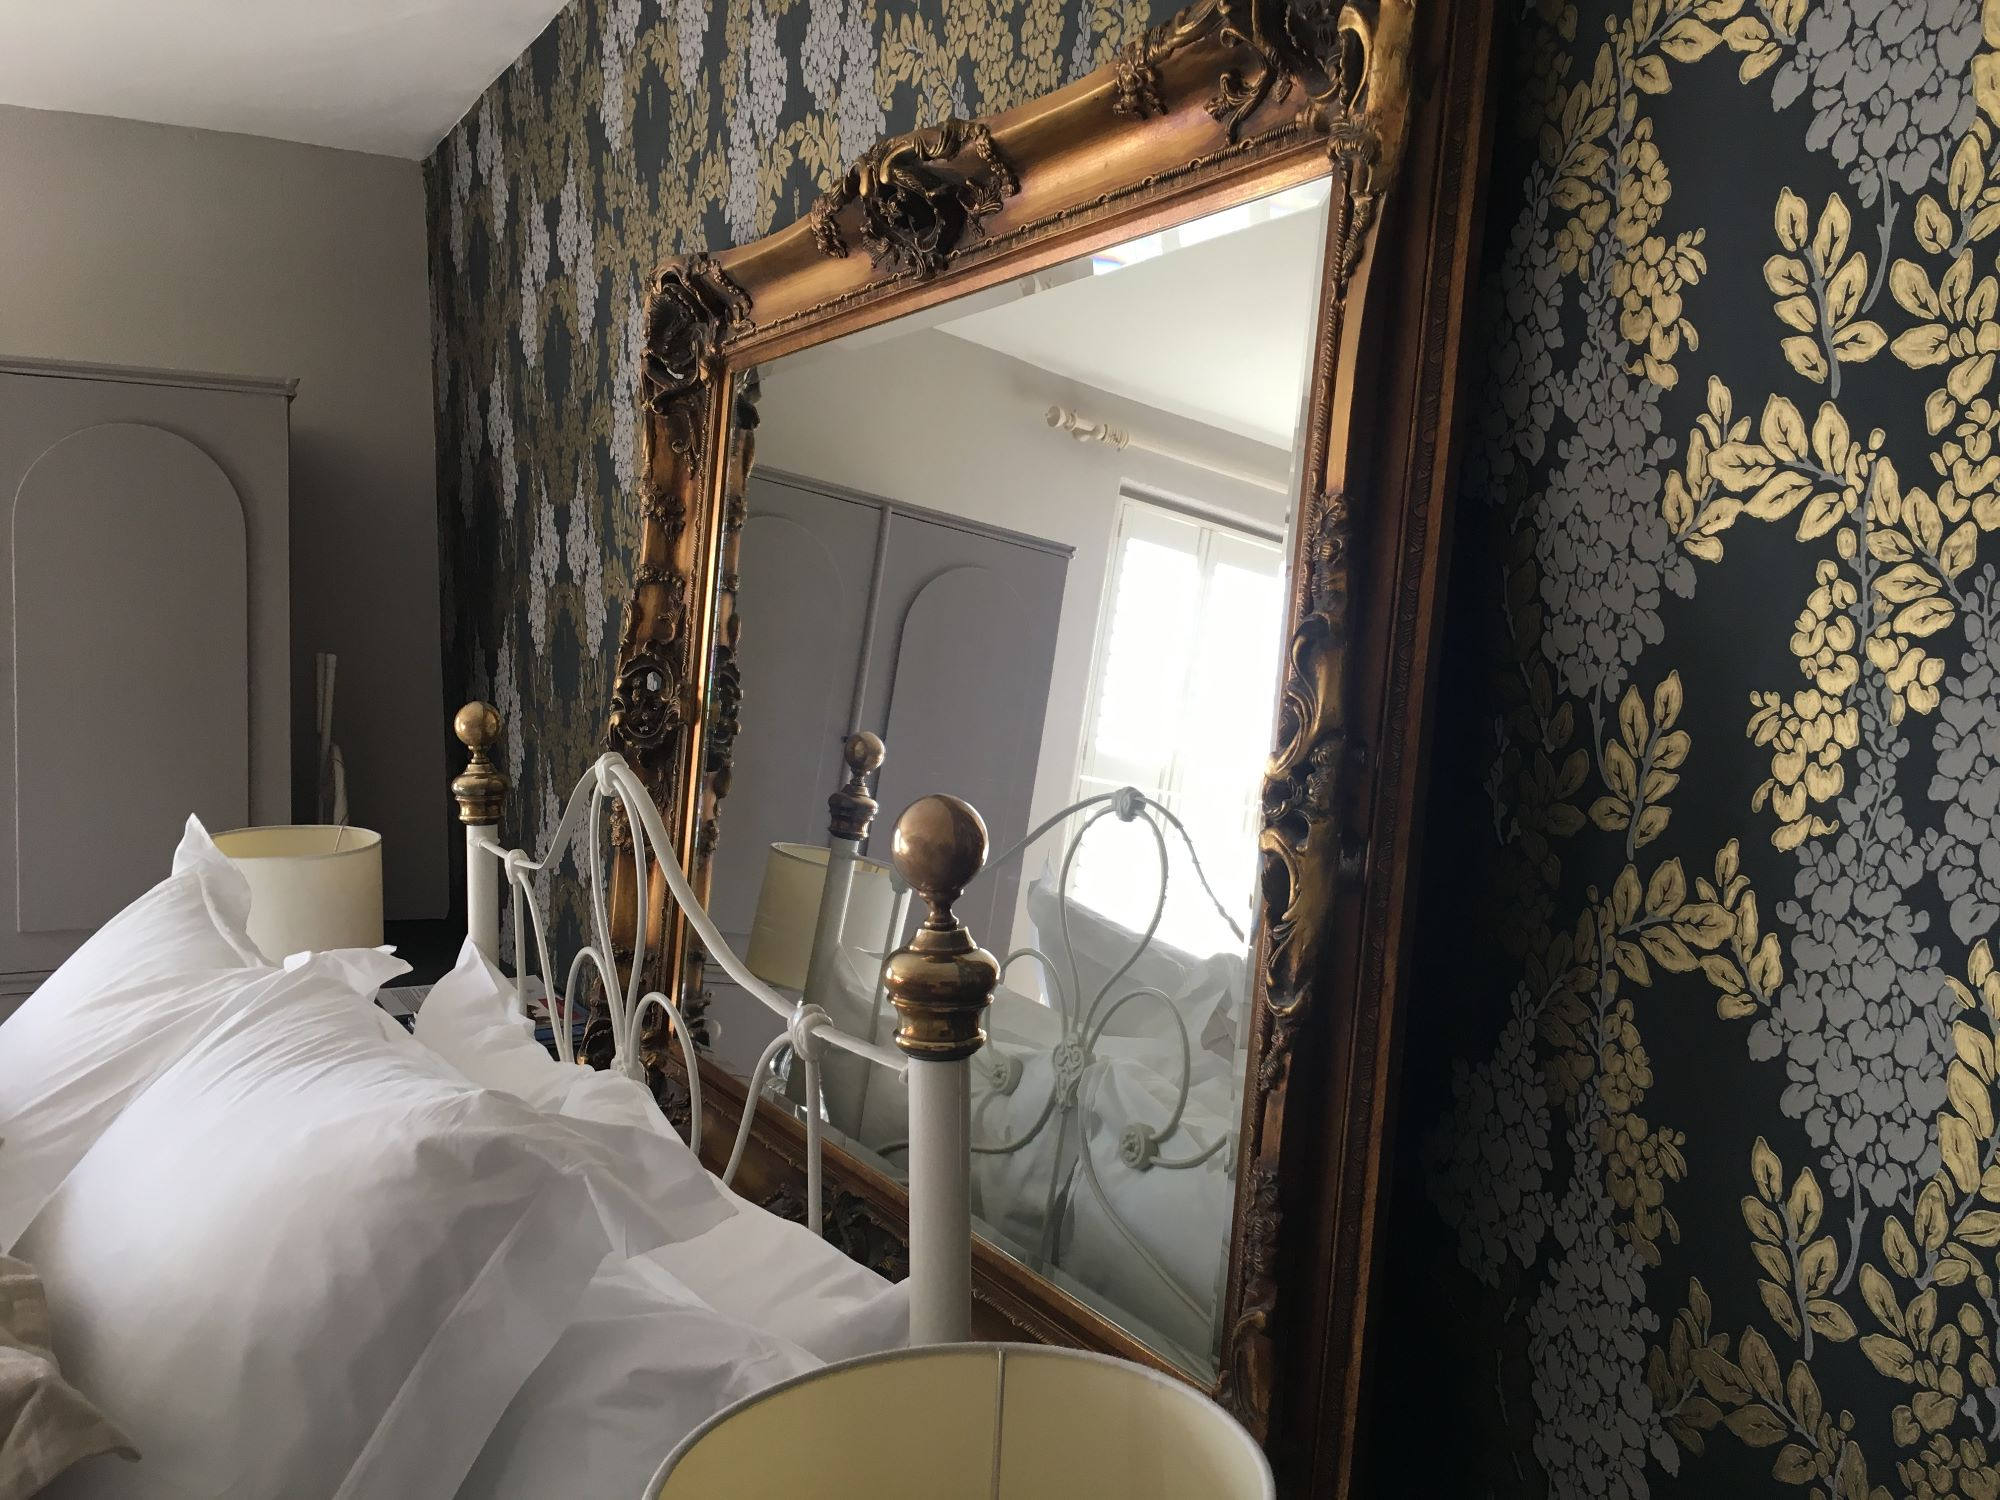 Brunee mirror from side of bed